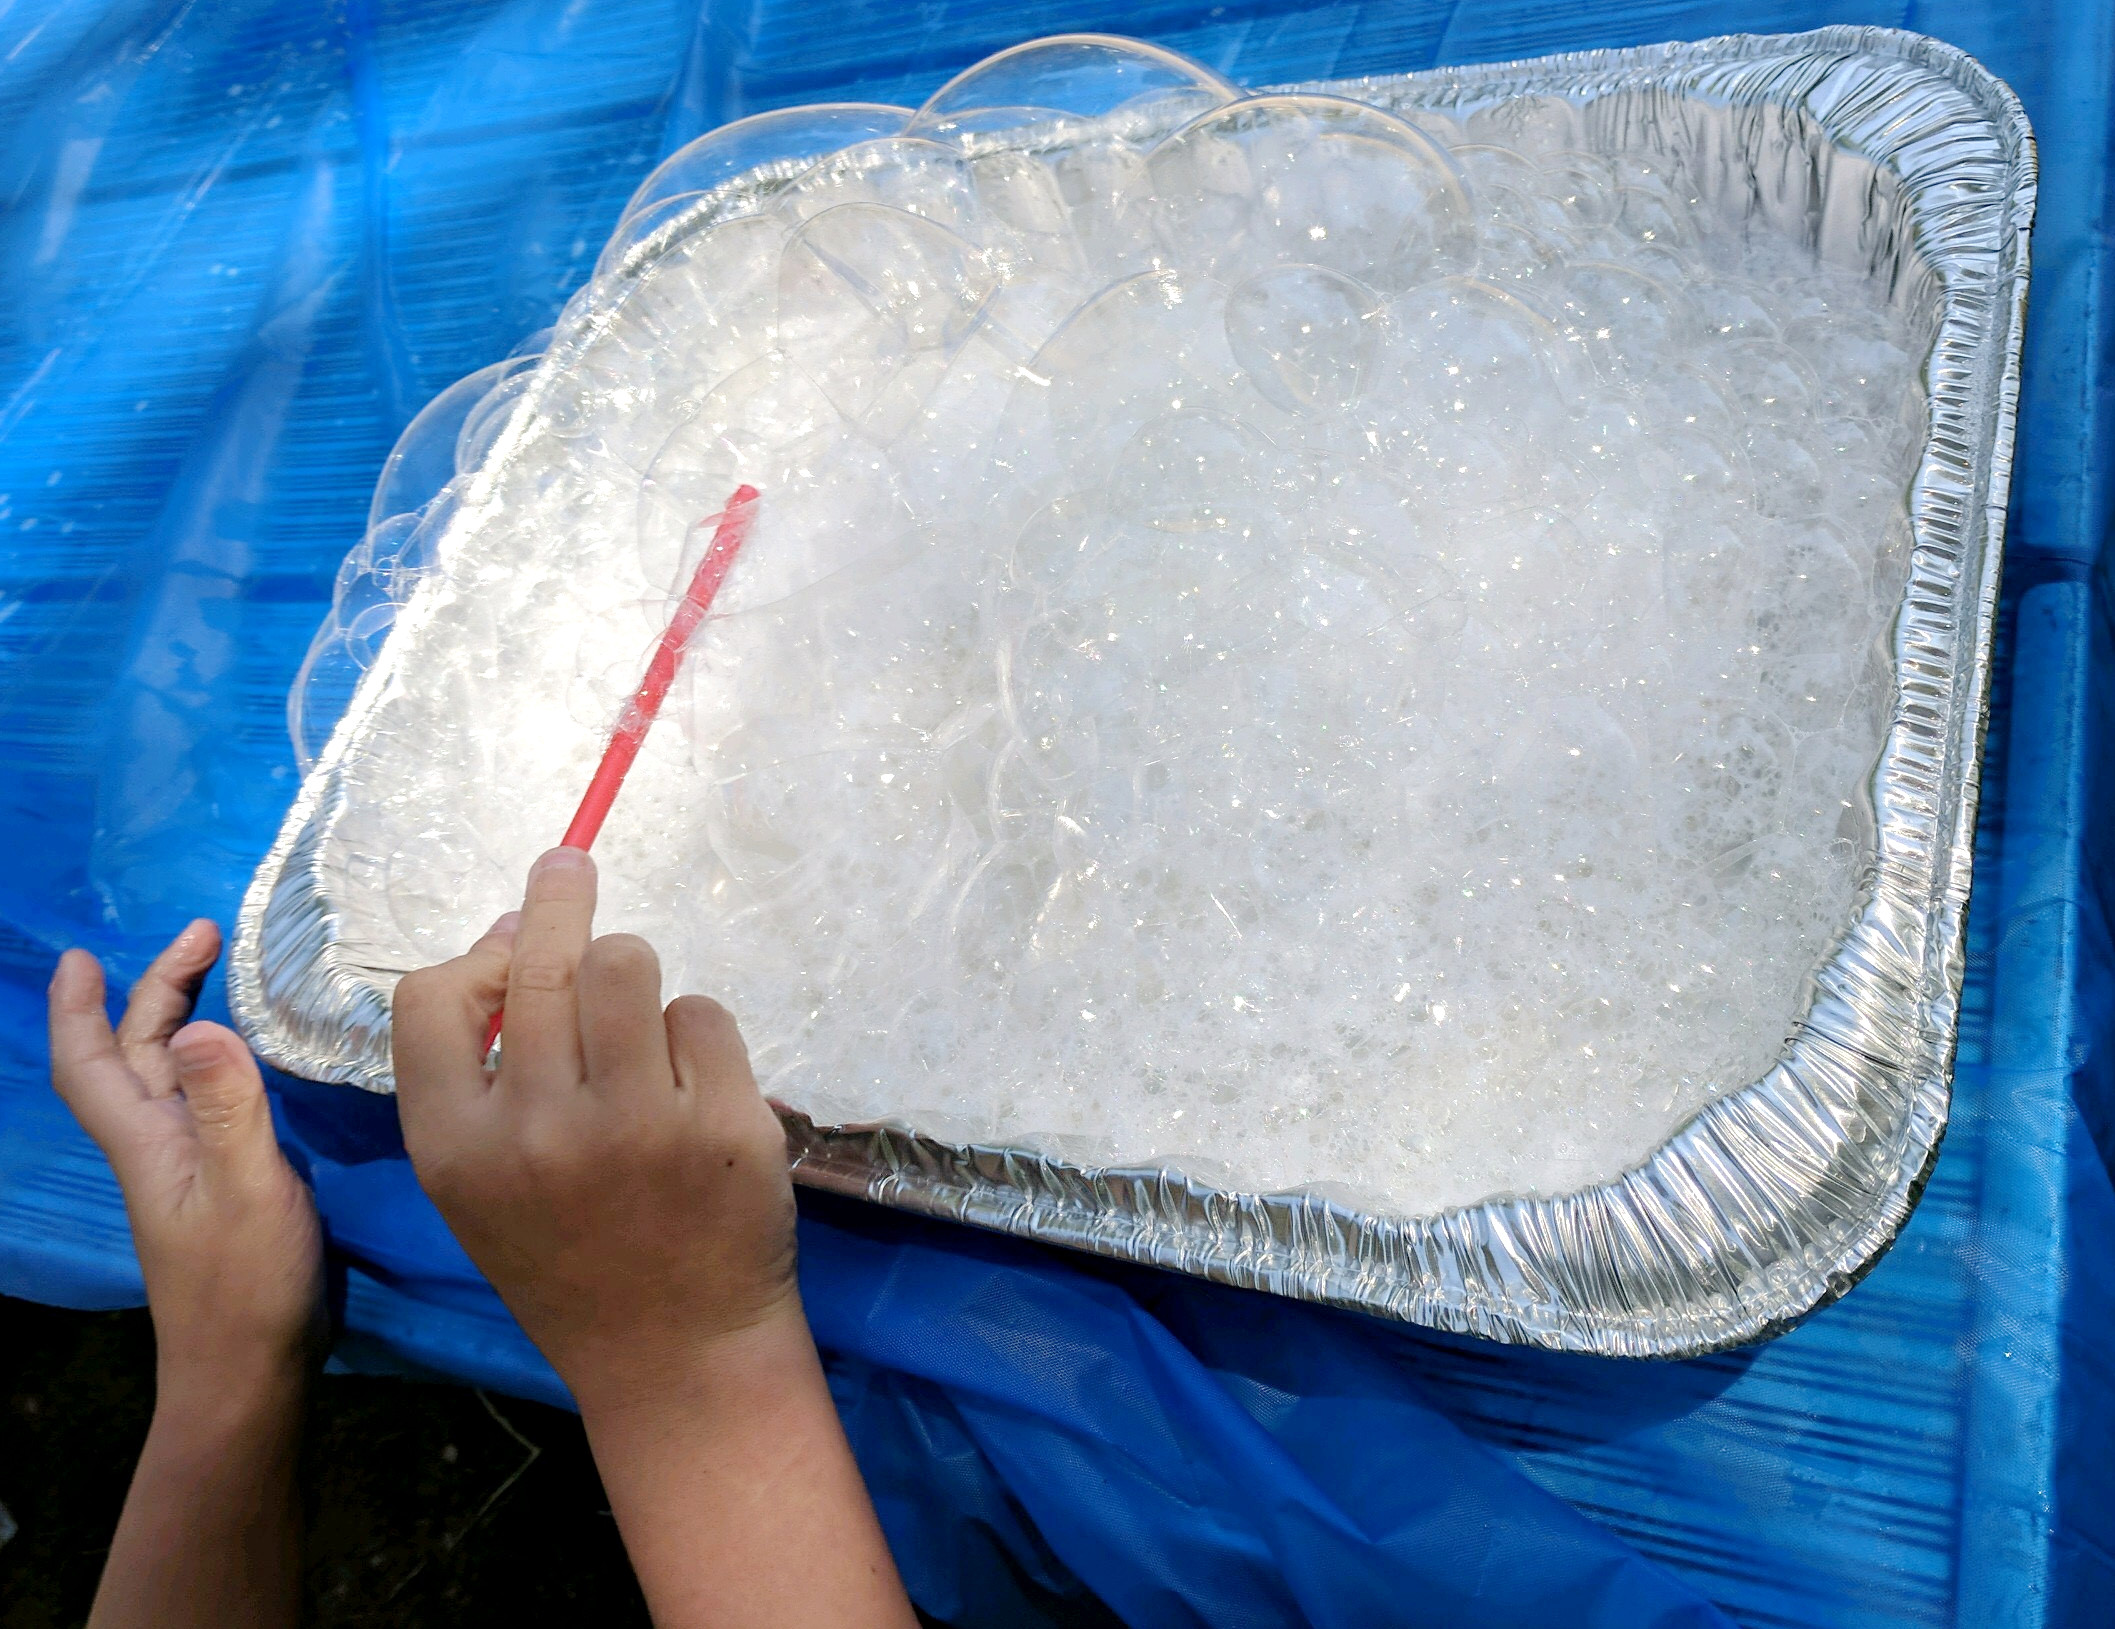 Bubble Explorer offered good, clean fun at the kiddie park August 21. ( Francie Winters photo )